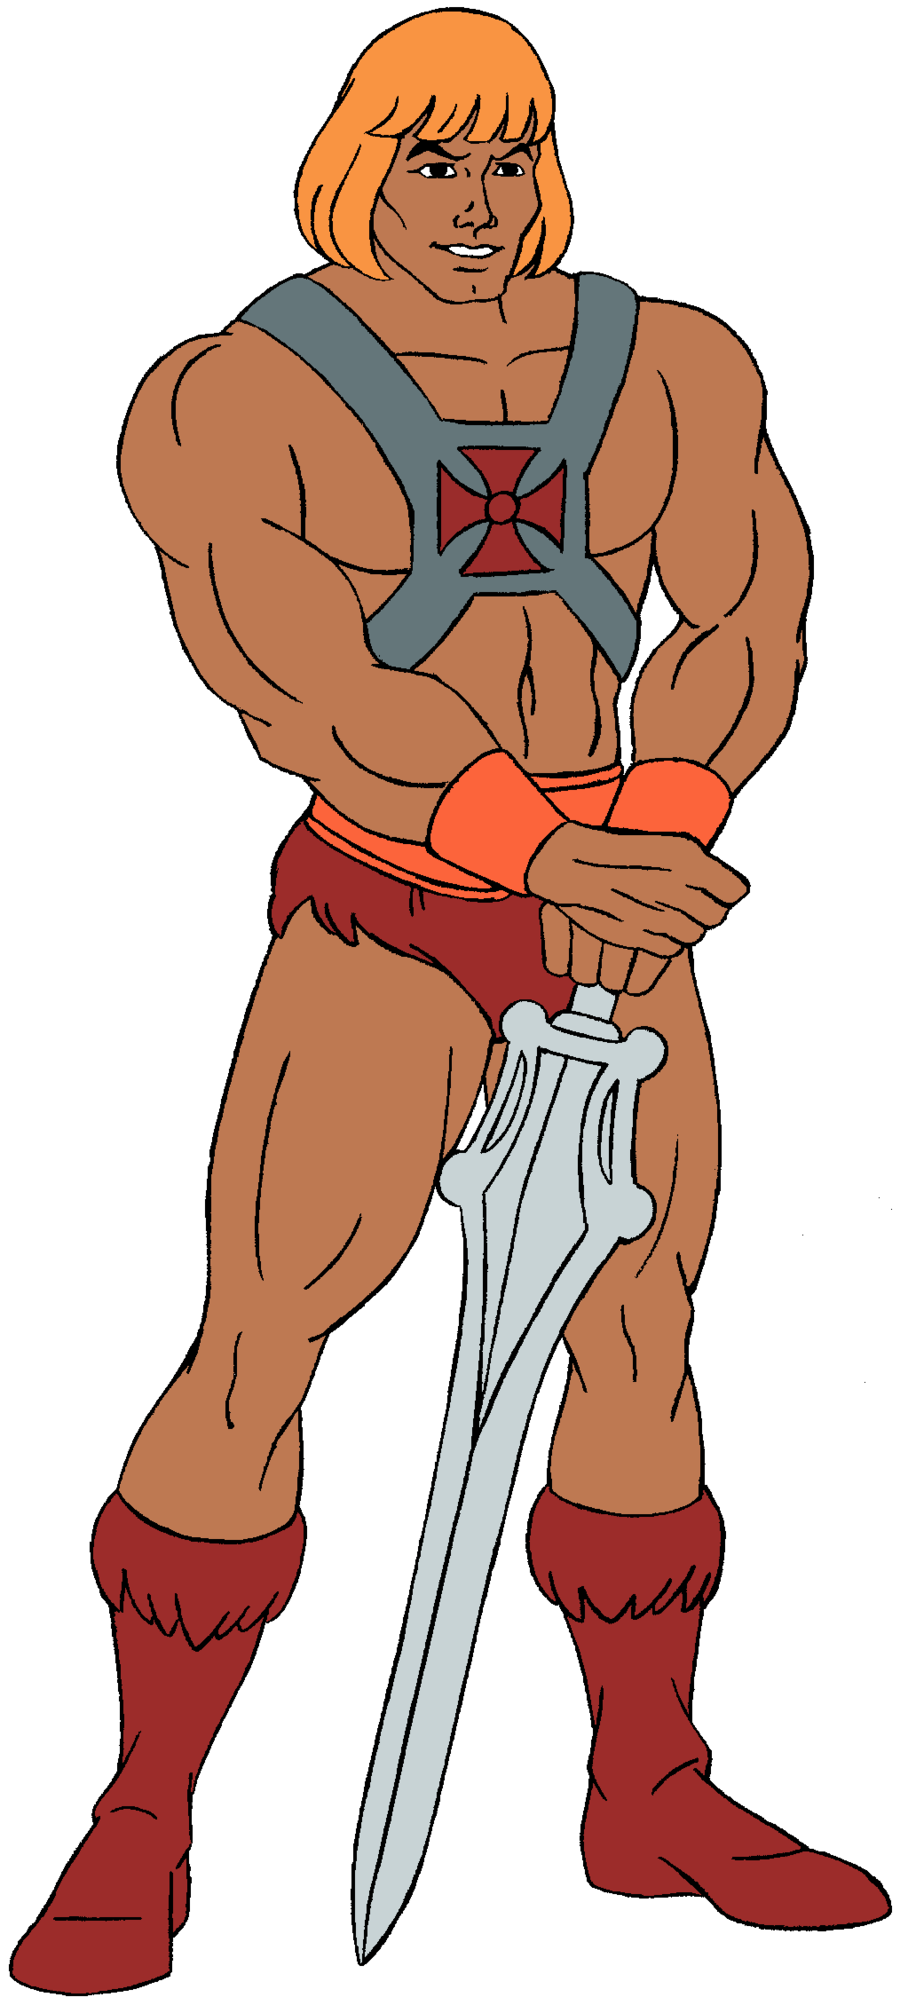 He man cartoon characters clipart images gallery for free download.